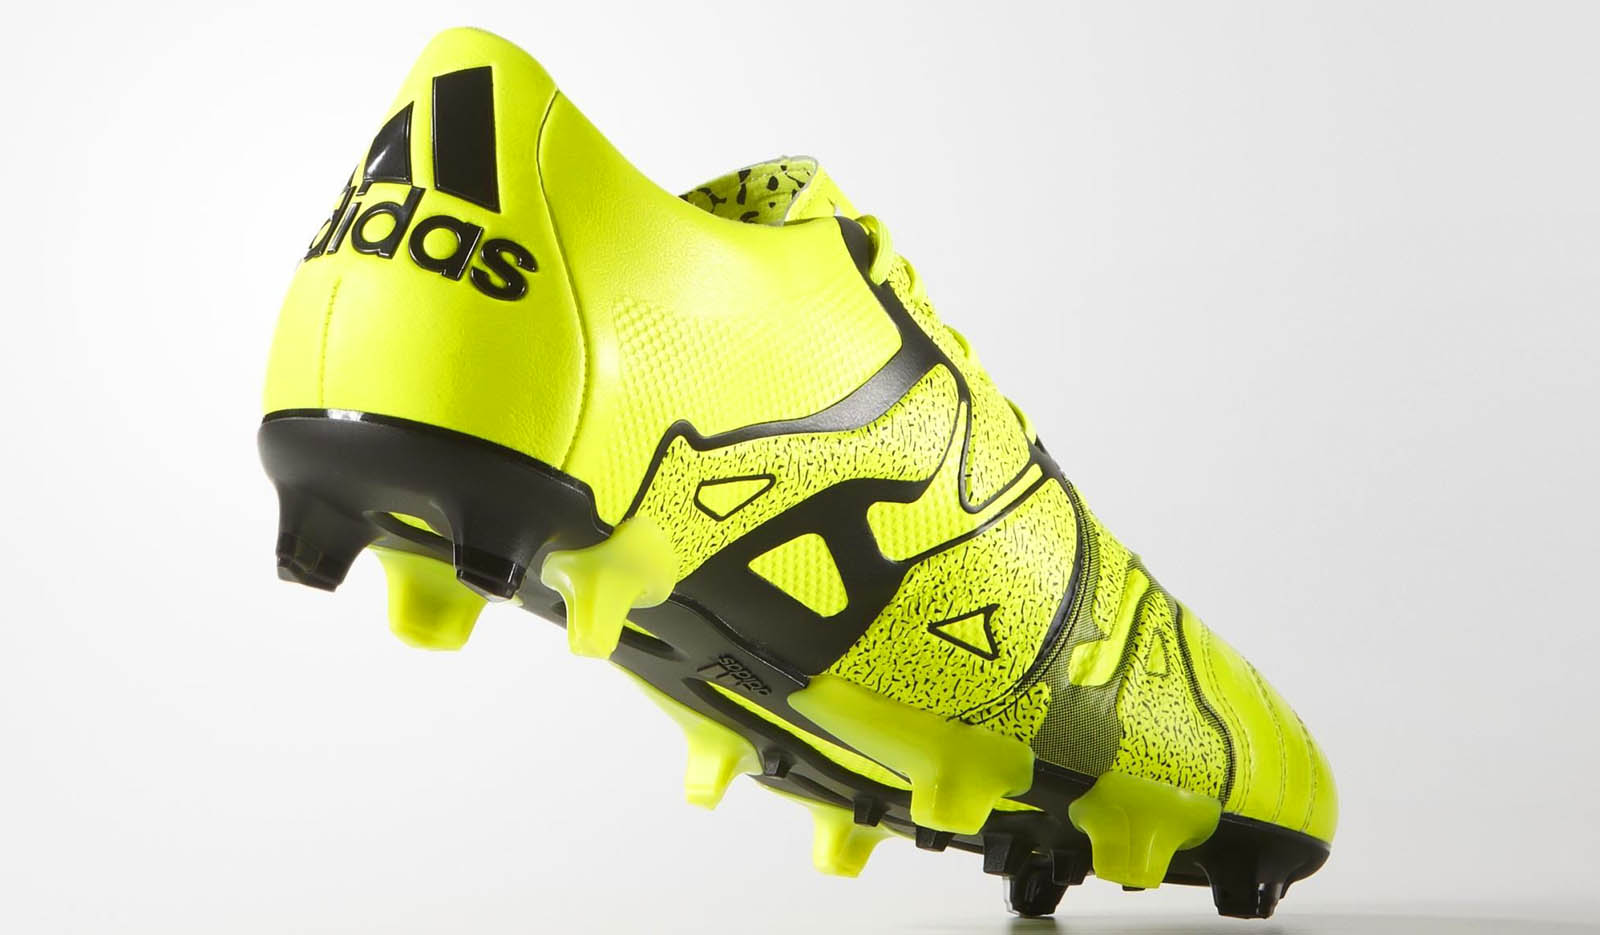 Adidas X 2015 Leather Boots Released